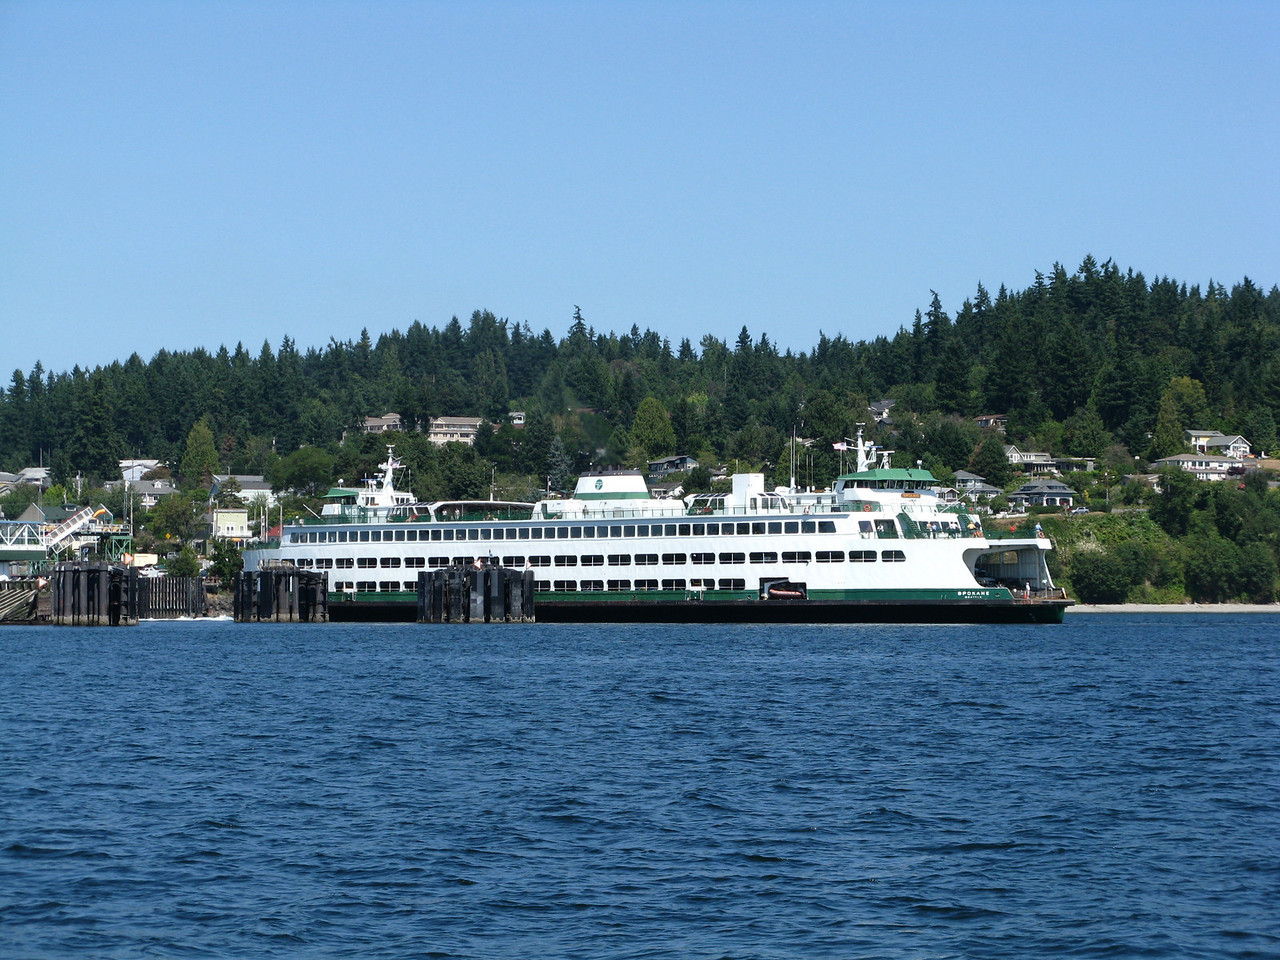 The Kingston-Edmonds ferry leaving the Kingston ferry dock.